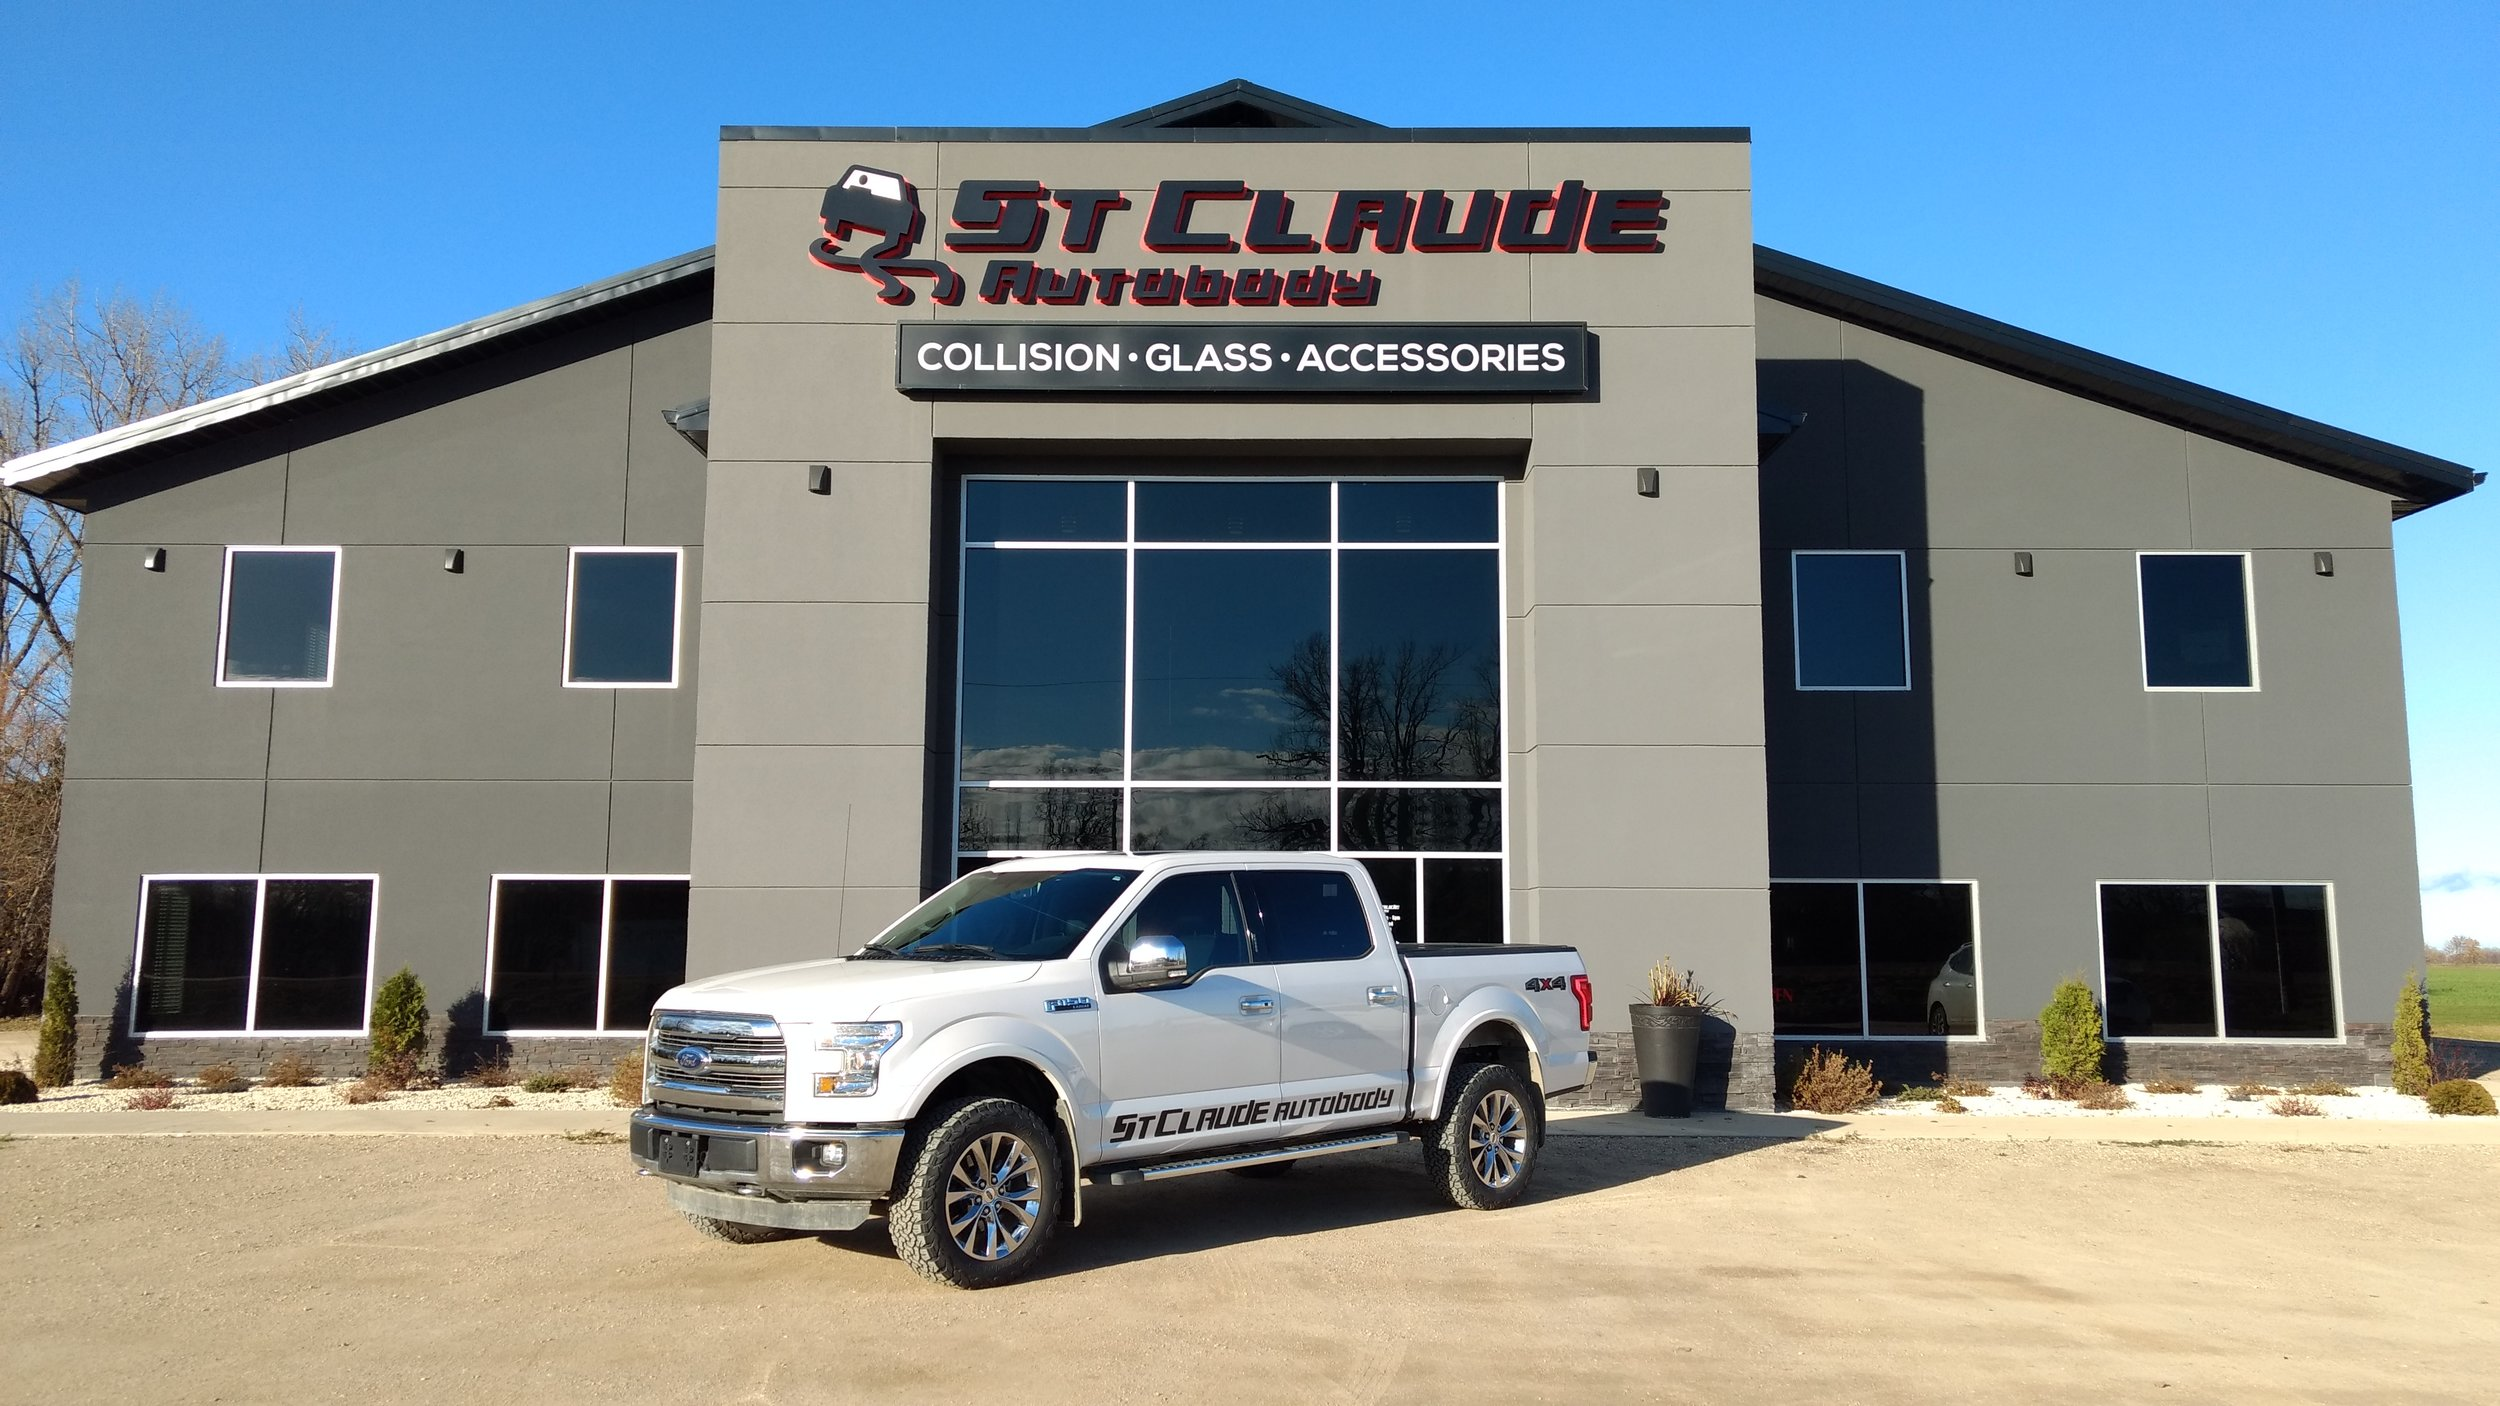 St. Claude Autobody is equipped to handle all your aluminum Ford truck repair needs.